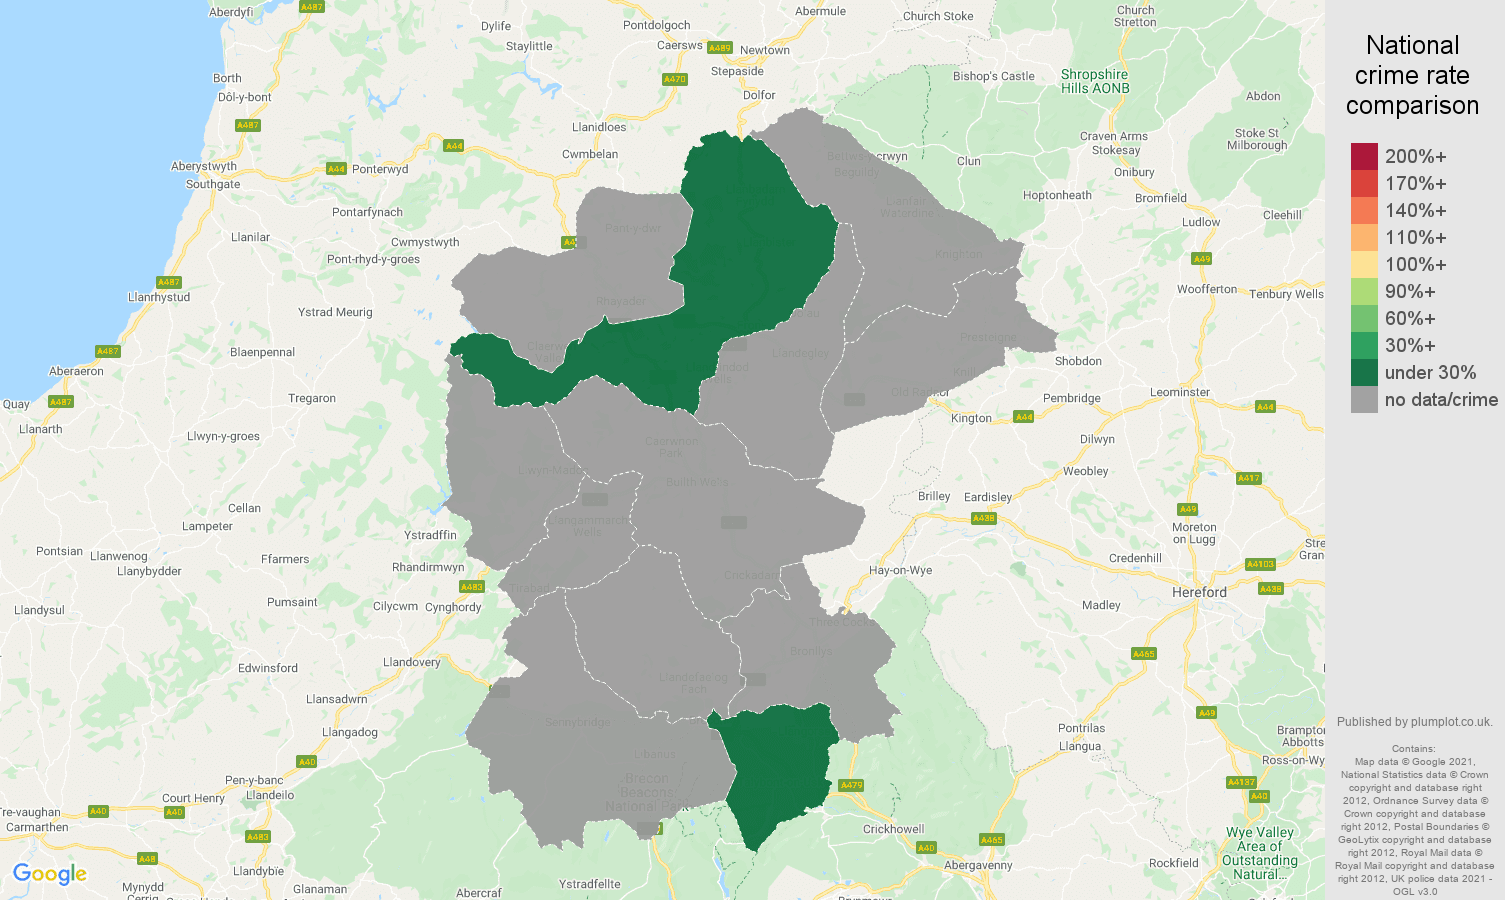 Llandrindod Wells theft from the person crime rate comparison map